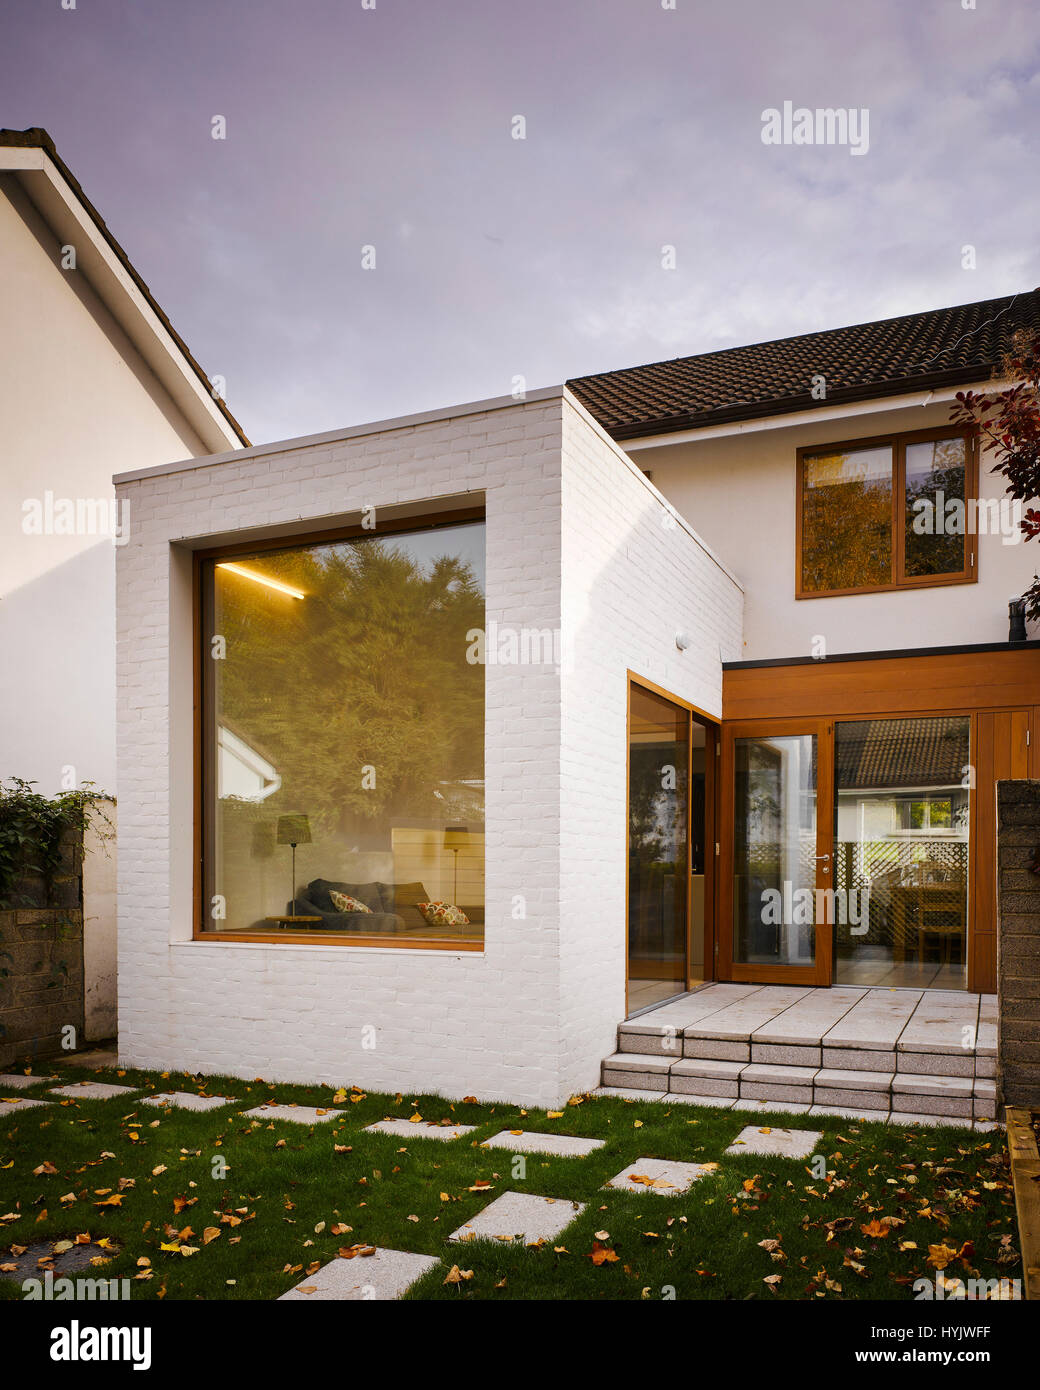 Exterior view of extension showing window and glass doors. Extension to House, Stillorgan, Dublin, Ireland. Architect: - Stock Image